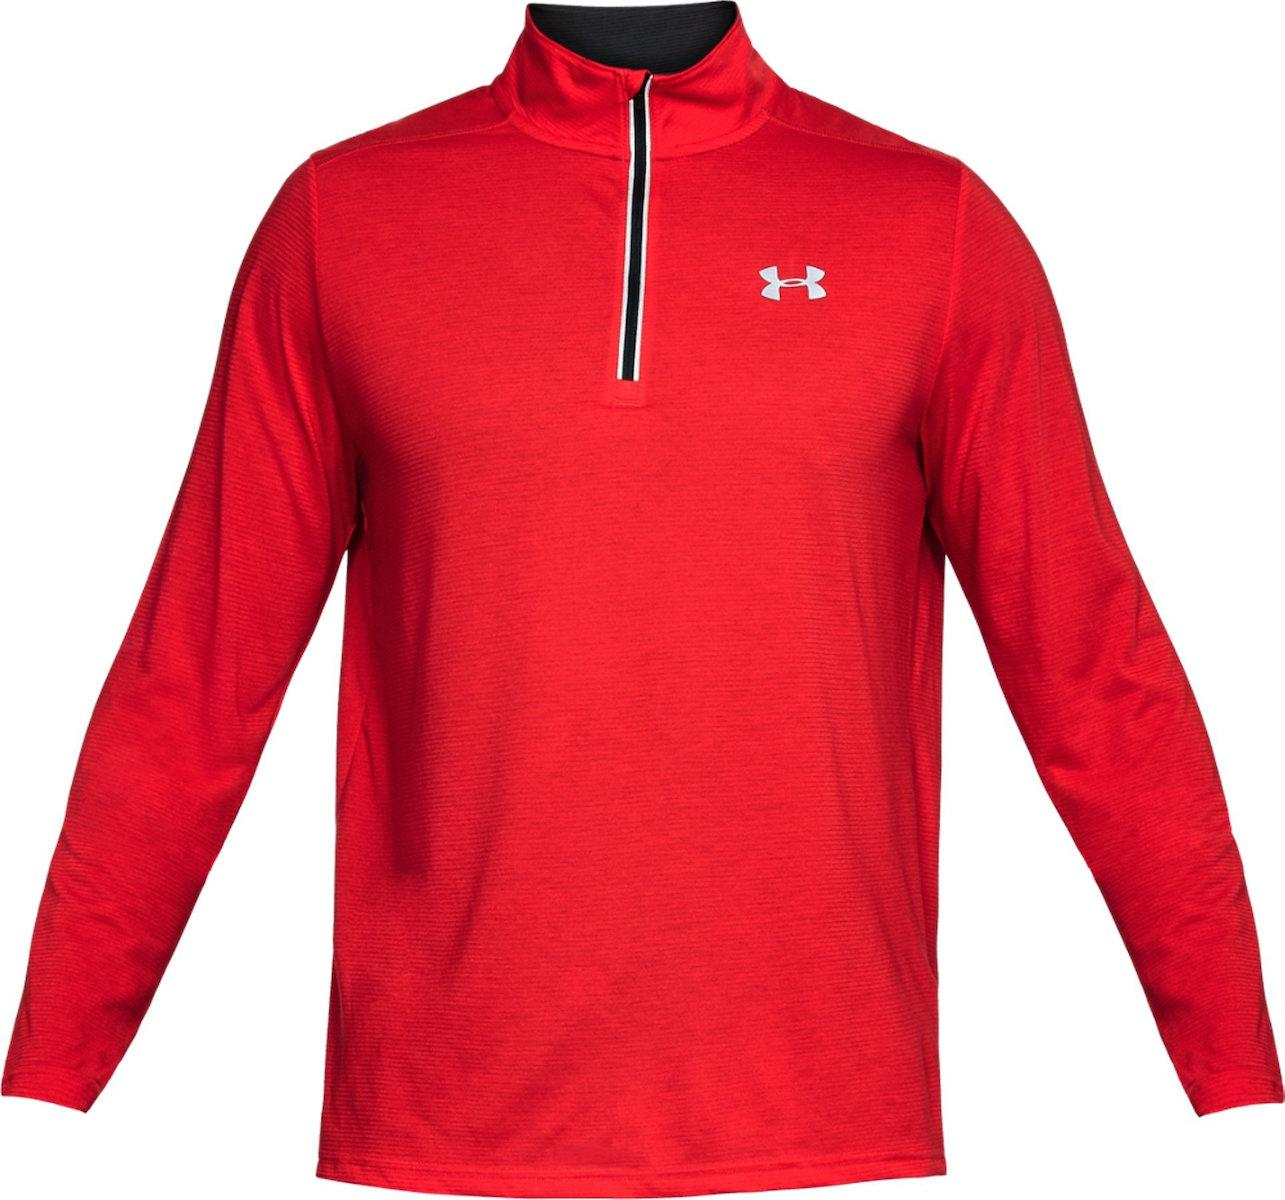 Mikina Under Armour Streaker 1/4 Zip,L